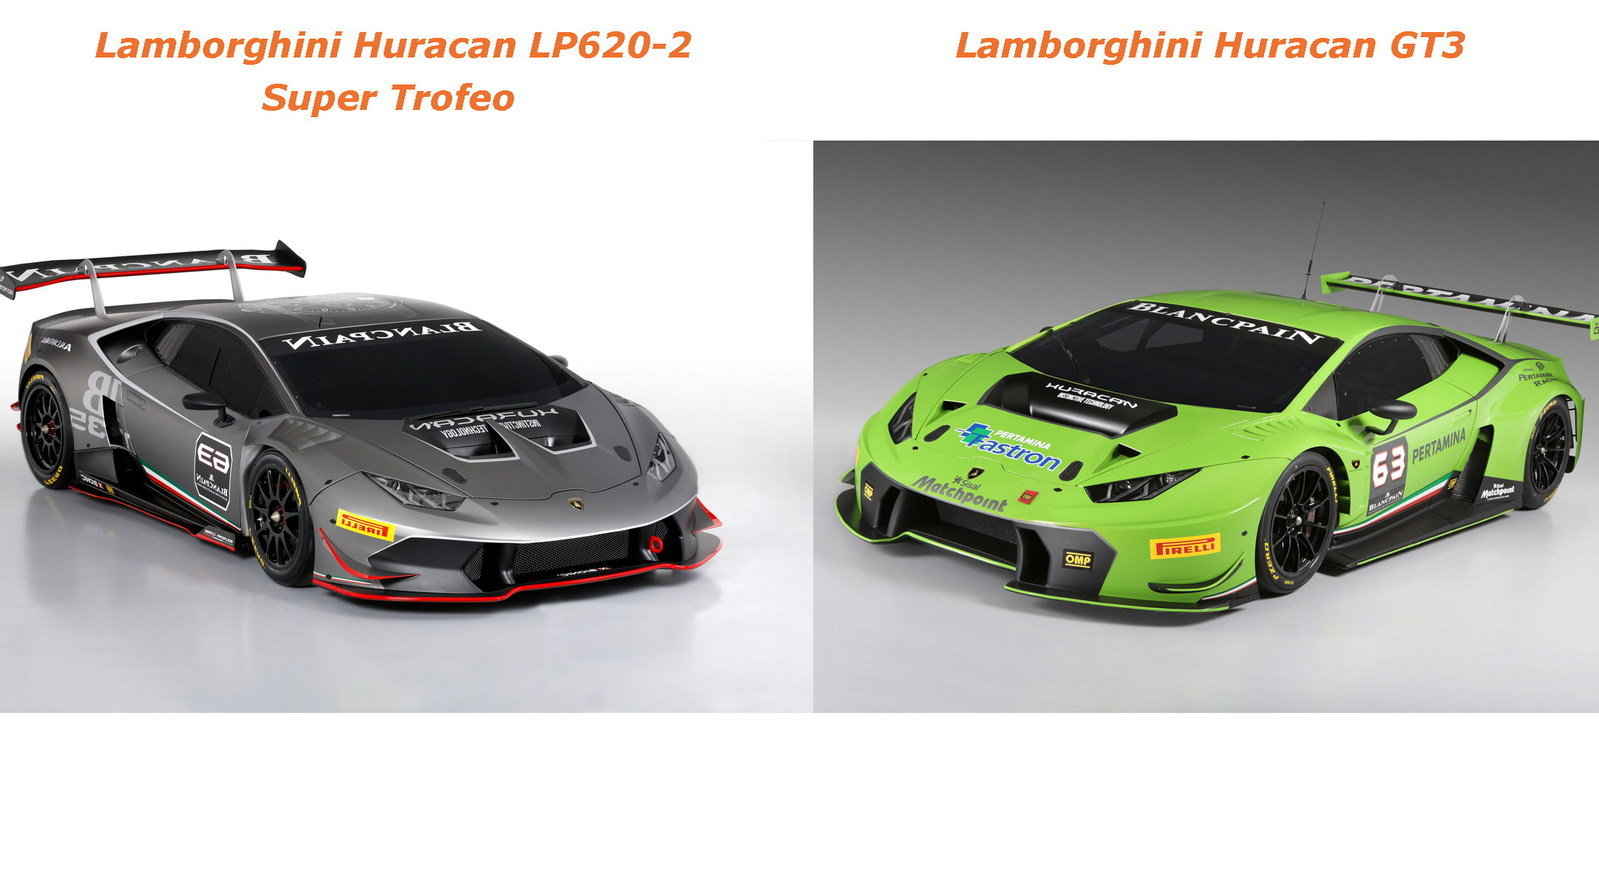 lamborghini huracan gt3 vs lamborghini huracan lp620 2 super trofeo picture 612560 car news. Black Bedroom Furniture Sets. Home Design Ideas